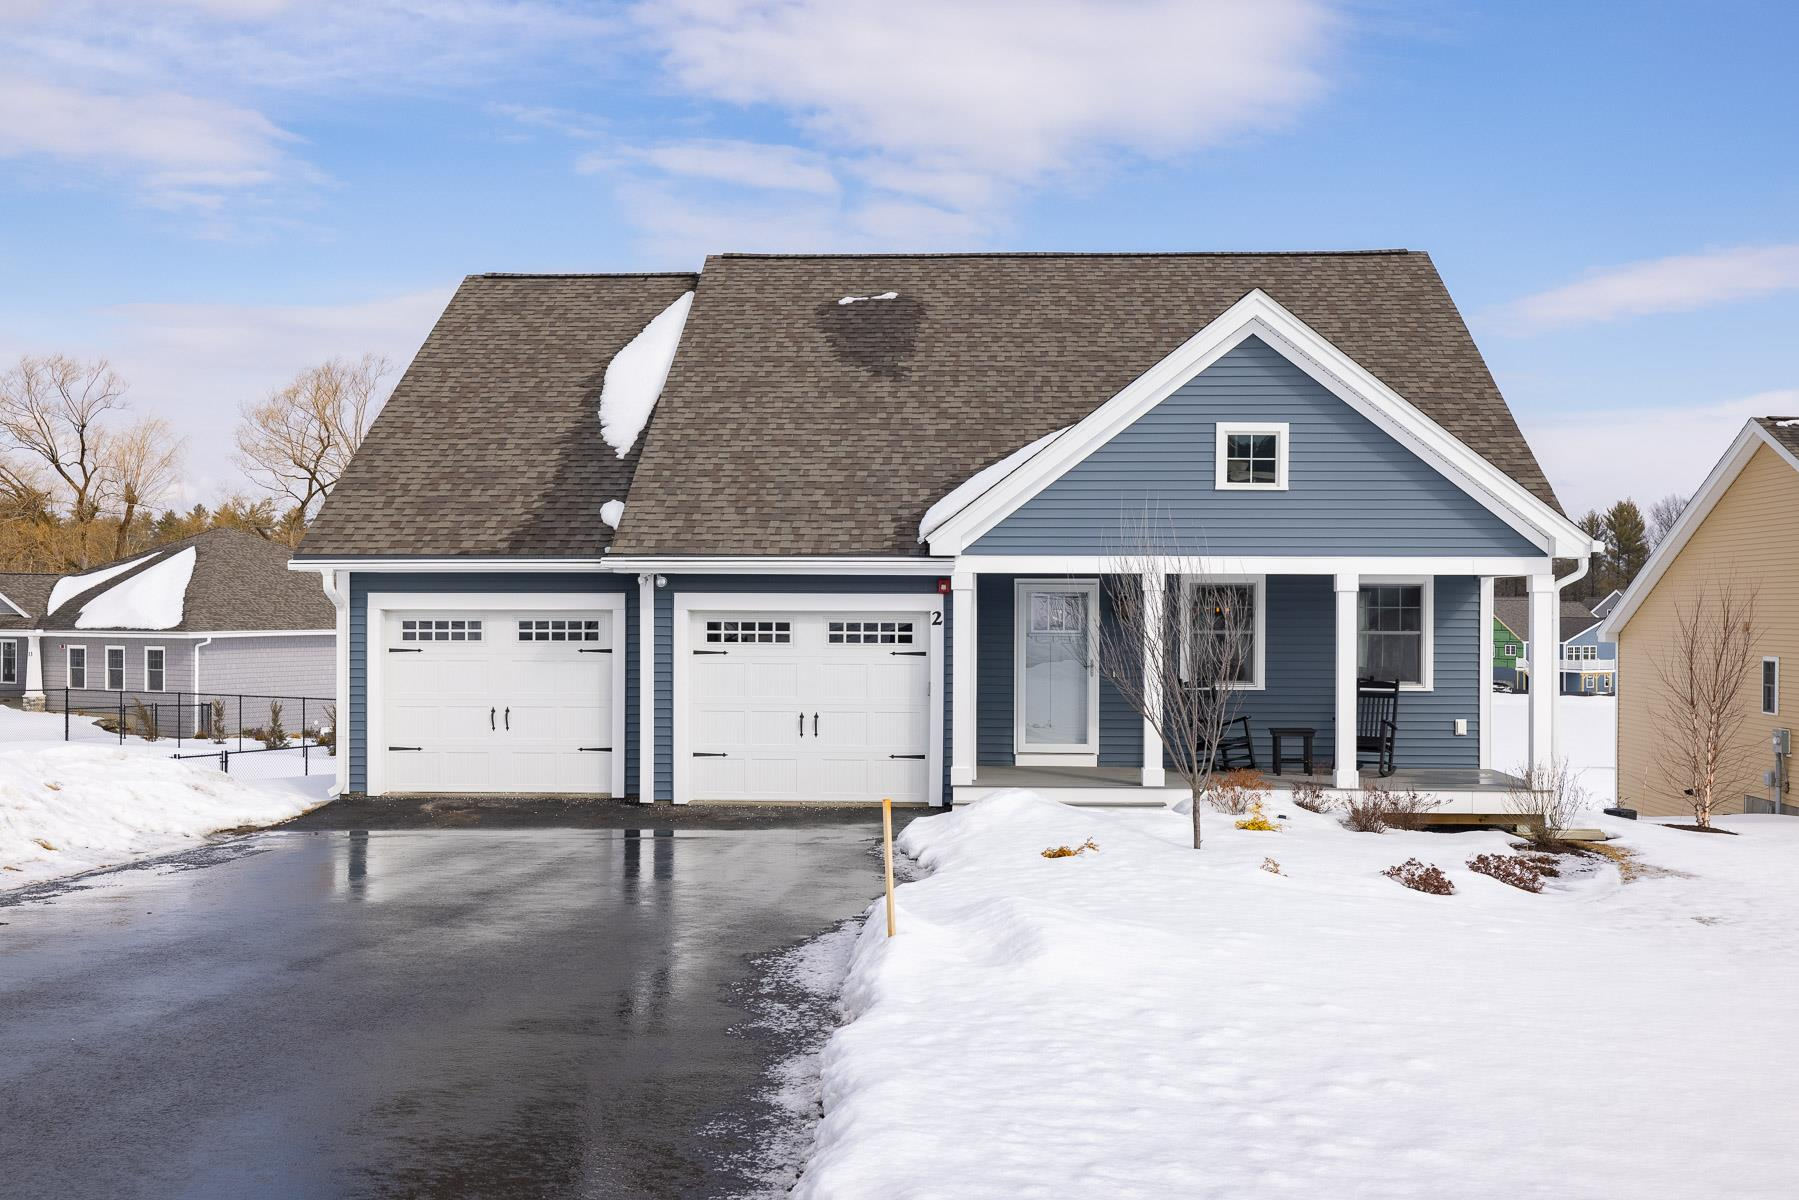 MLS 4849554: 2 Sunset Lane, Brentwood NH